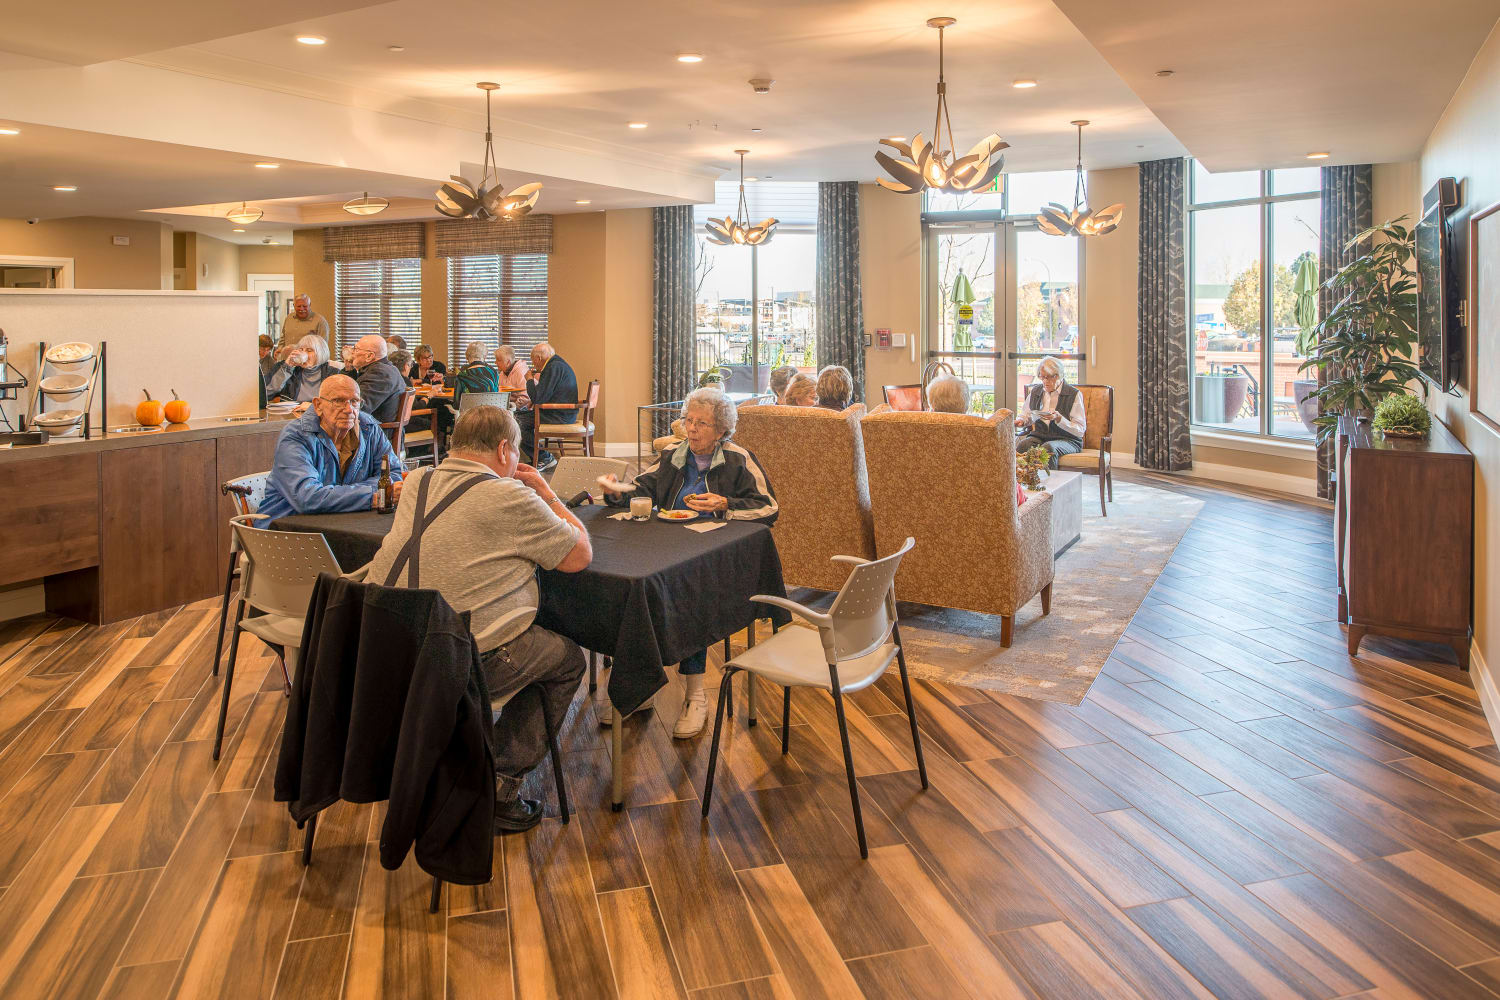 Residents in the grand dining room enjoying a meal and each others' company at Village at Belmar